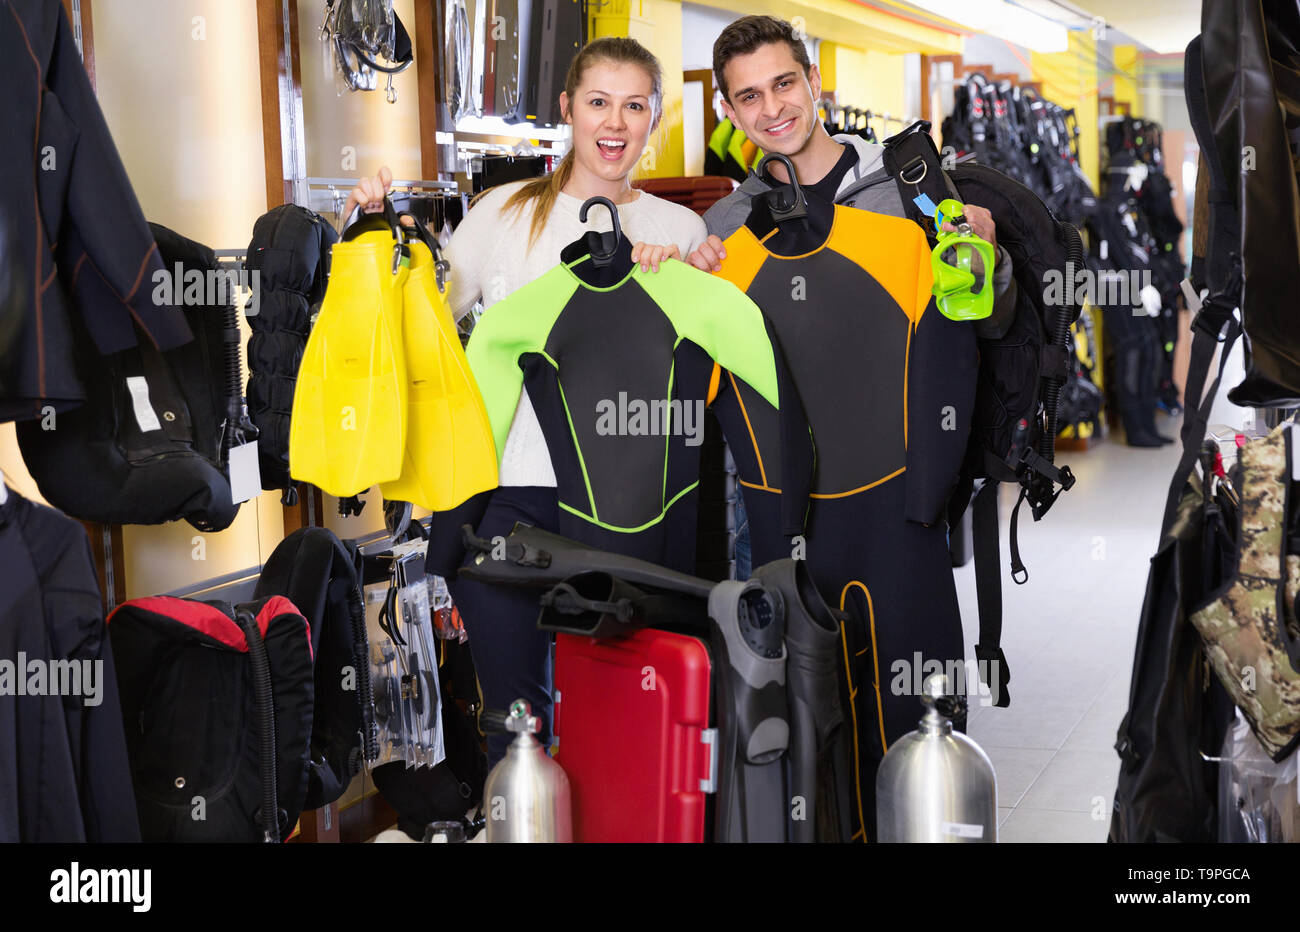 Glad cheerful positive  man and woman are standing with modern diving equipment in the store. - Stock Image